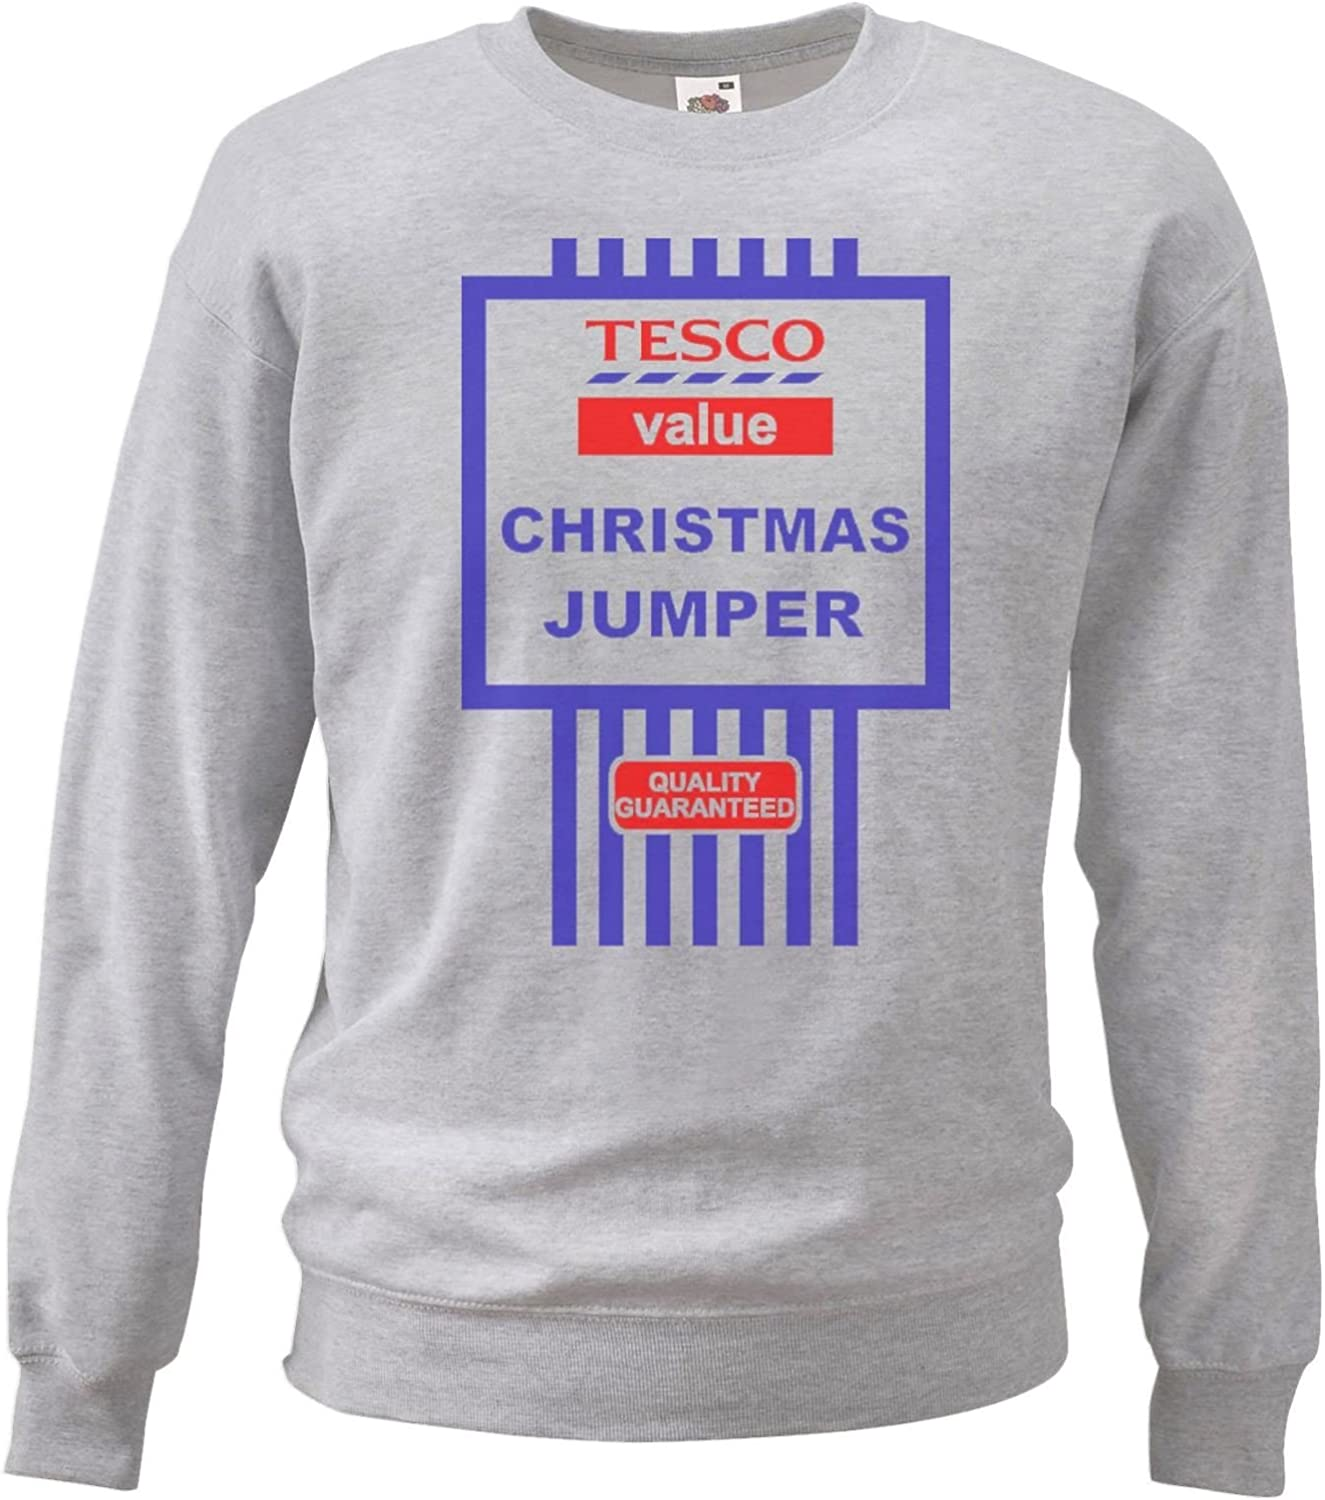 The Dragons Den Medium Grey Tesco S Value Christmas Jumpers Sweatshirt Funny Gift Idea Amazon Co Uk Clothing